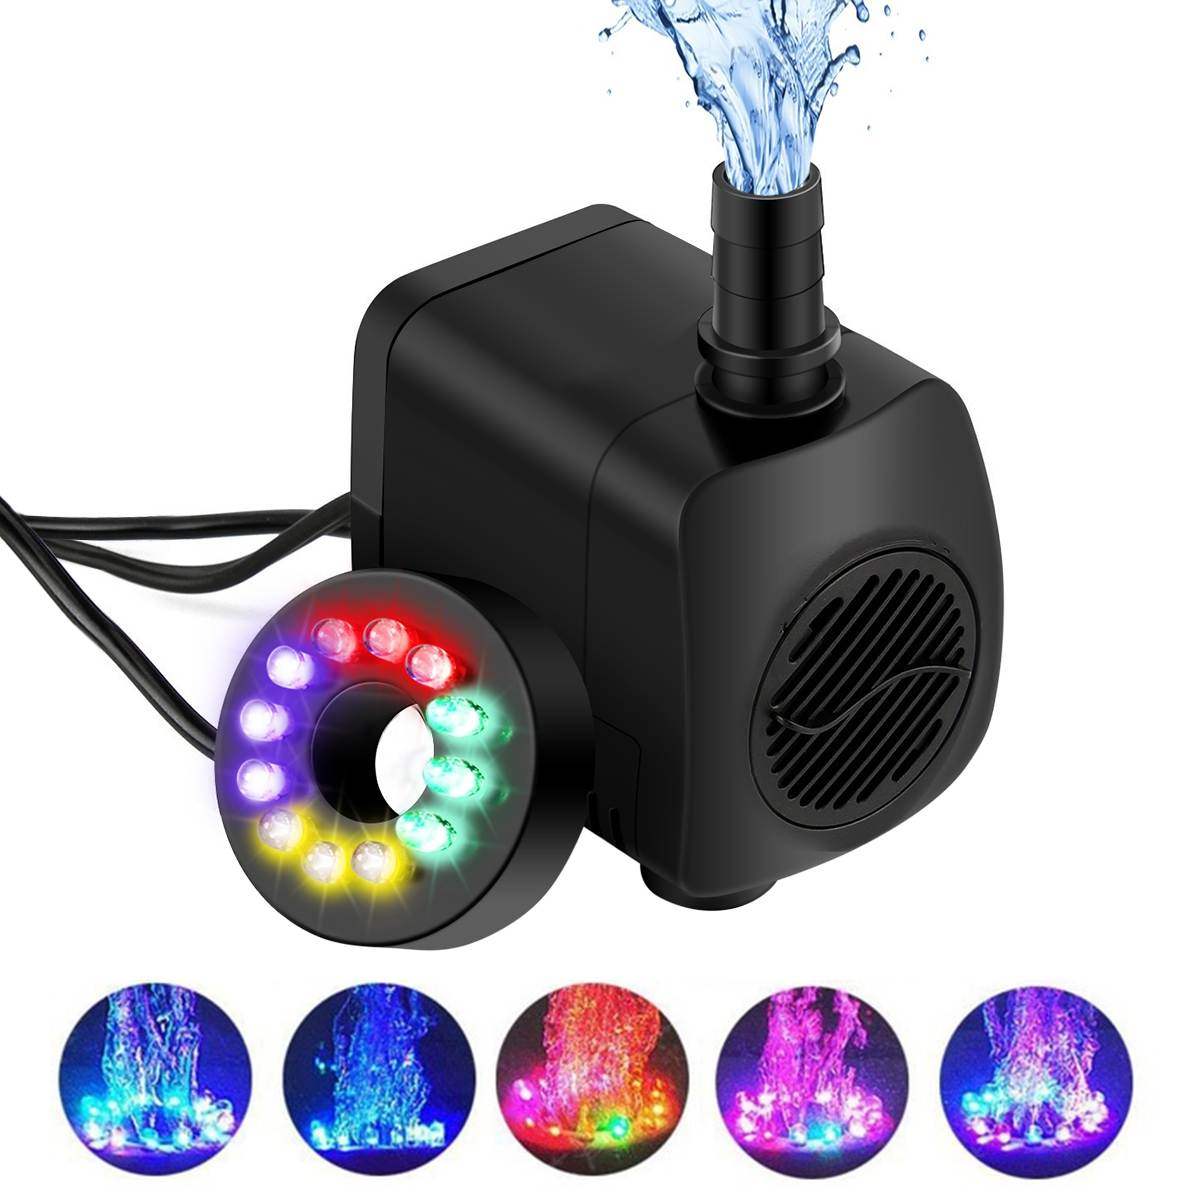 15W 800L/H LED Light Household Ultra-Quiet Submersible Water Fountain Pump Filter Fish Pond Aquarium Water Pump Tank Fountain